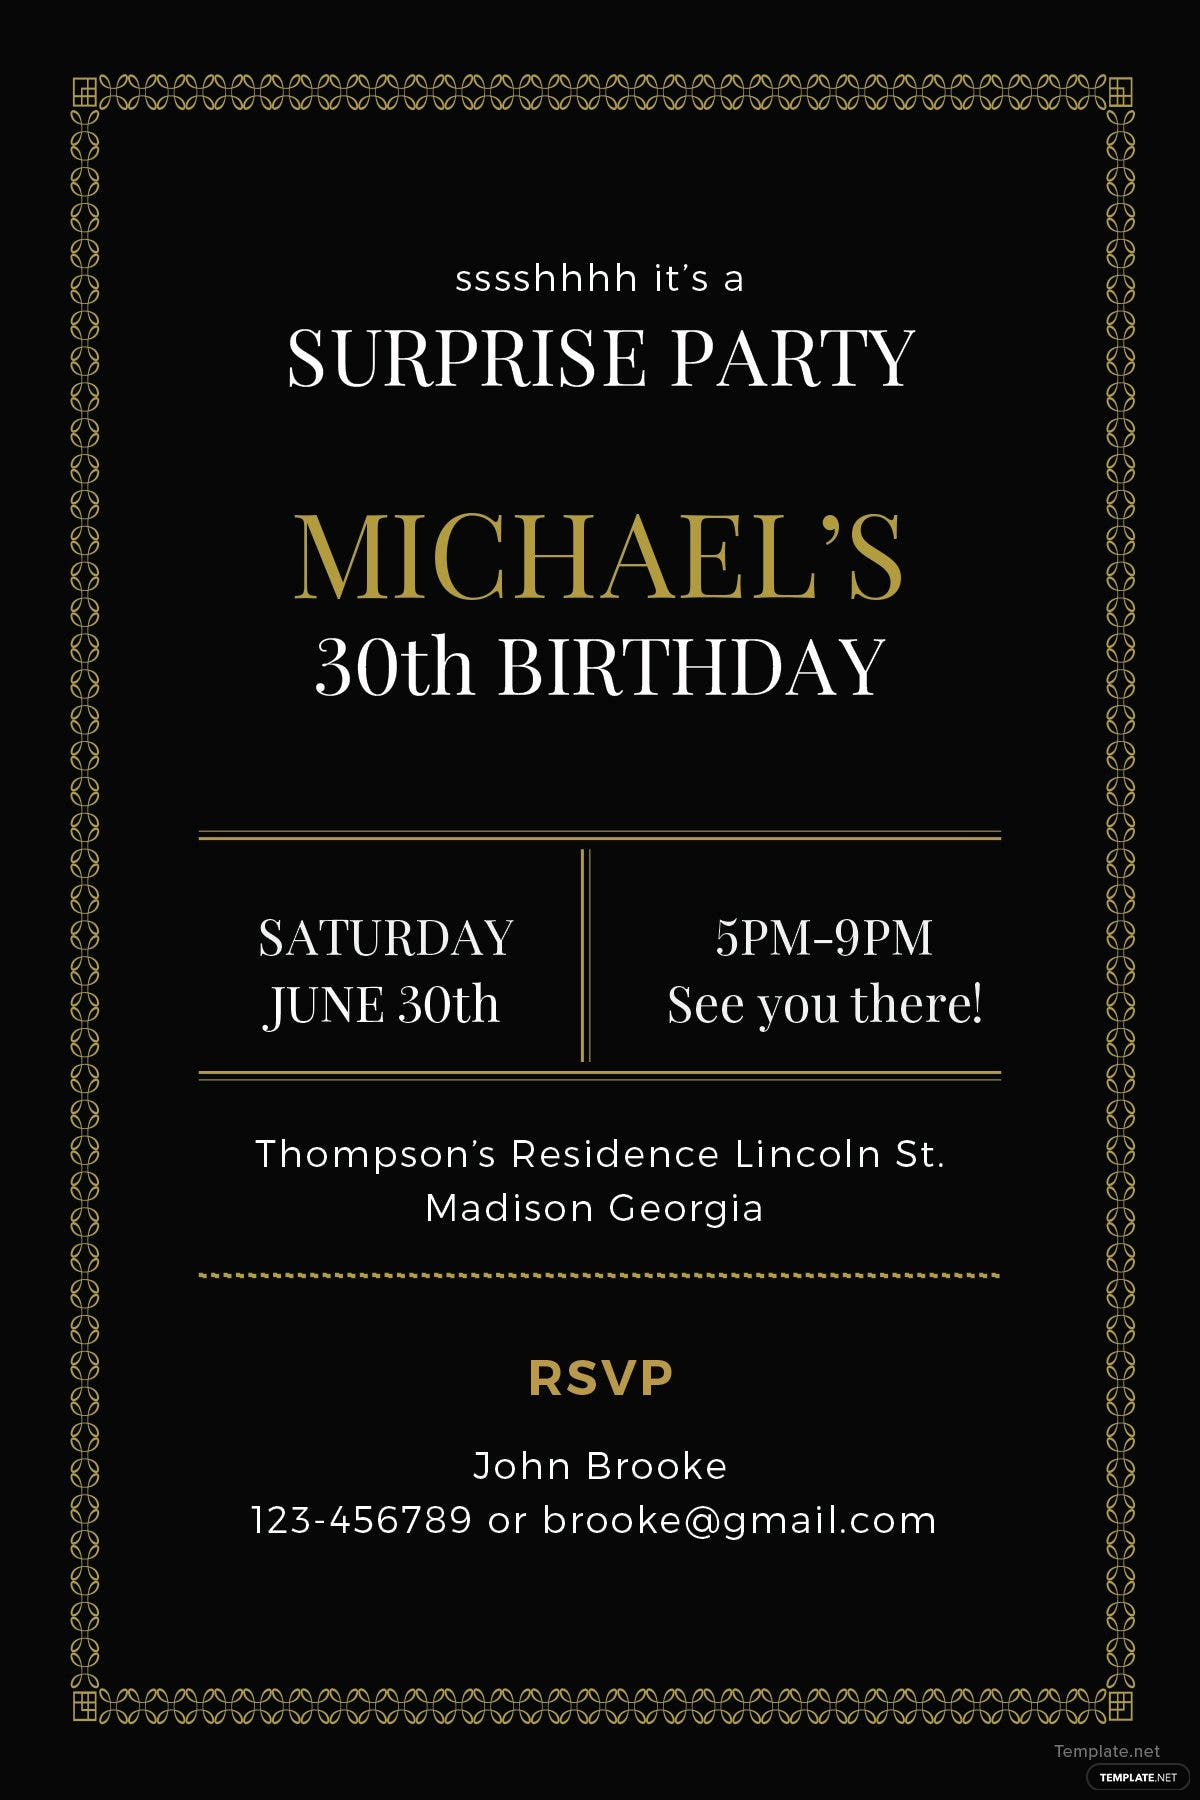 Free Surprise Party Invitation Template in Adobe ...